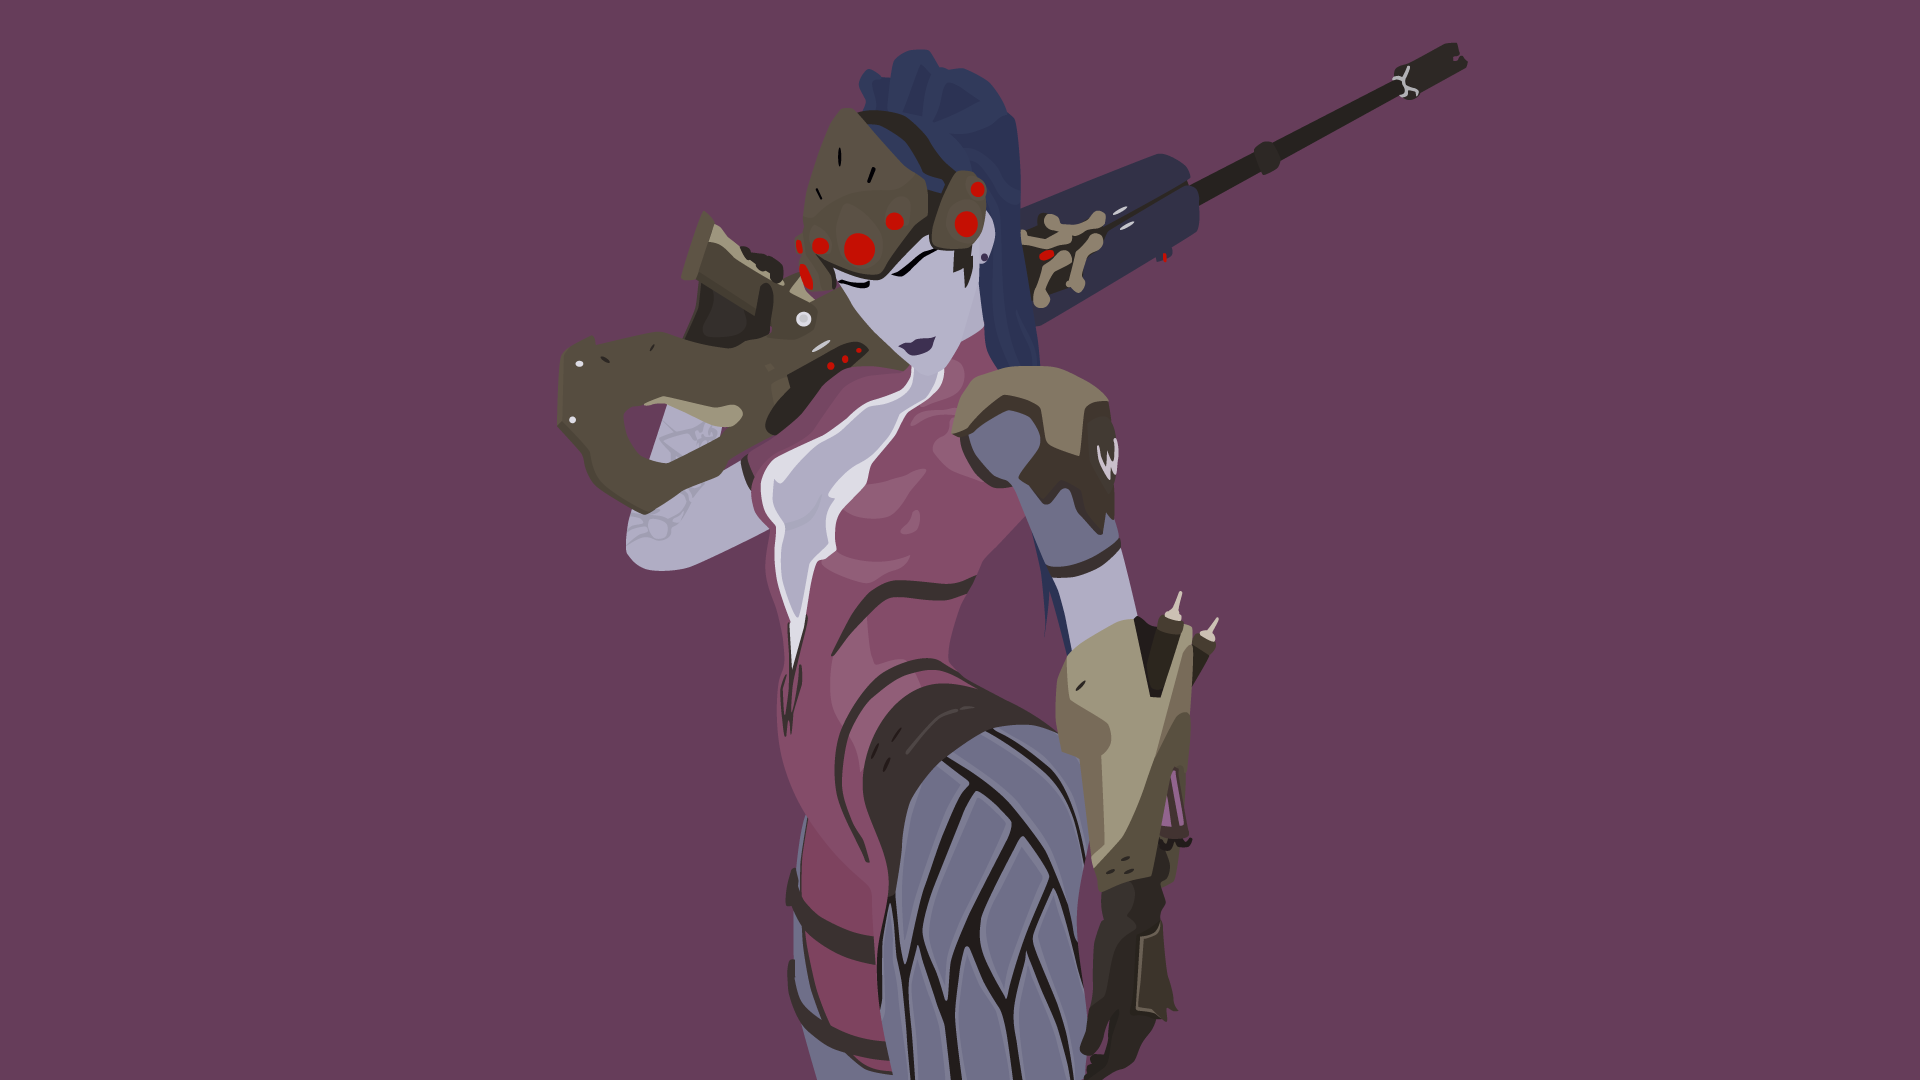 Widowmaker Vector Art Wallpaper by WalidSodki